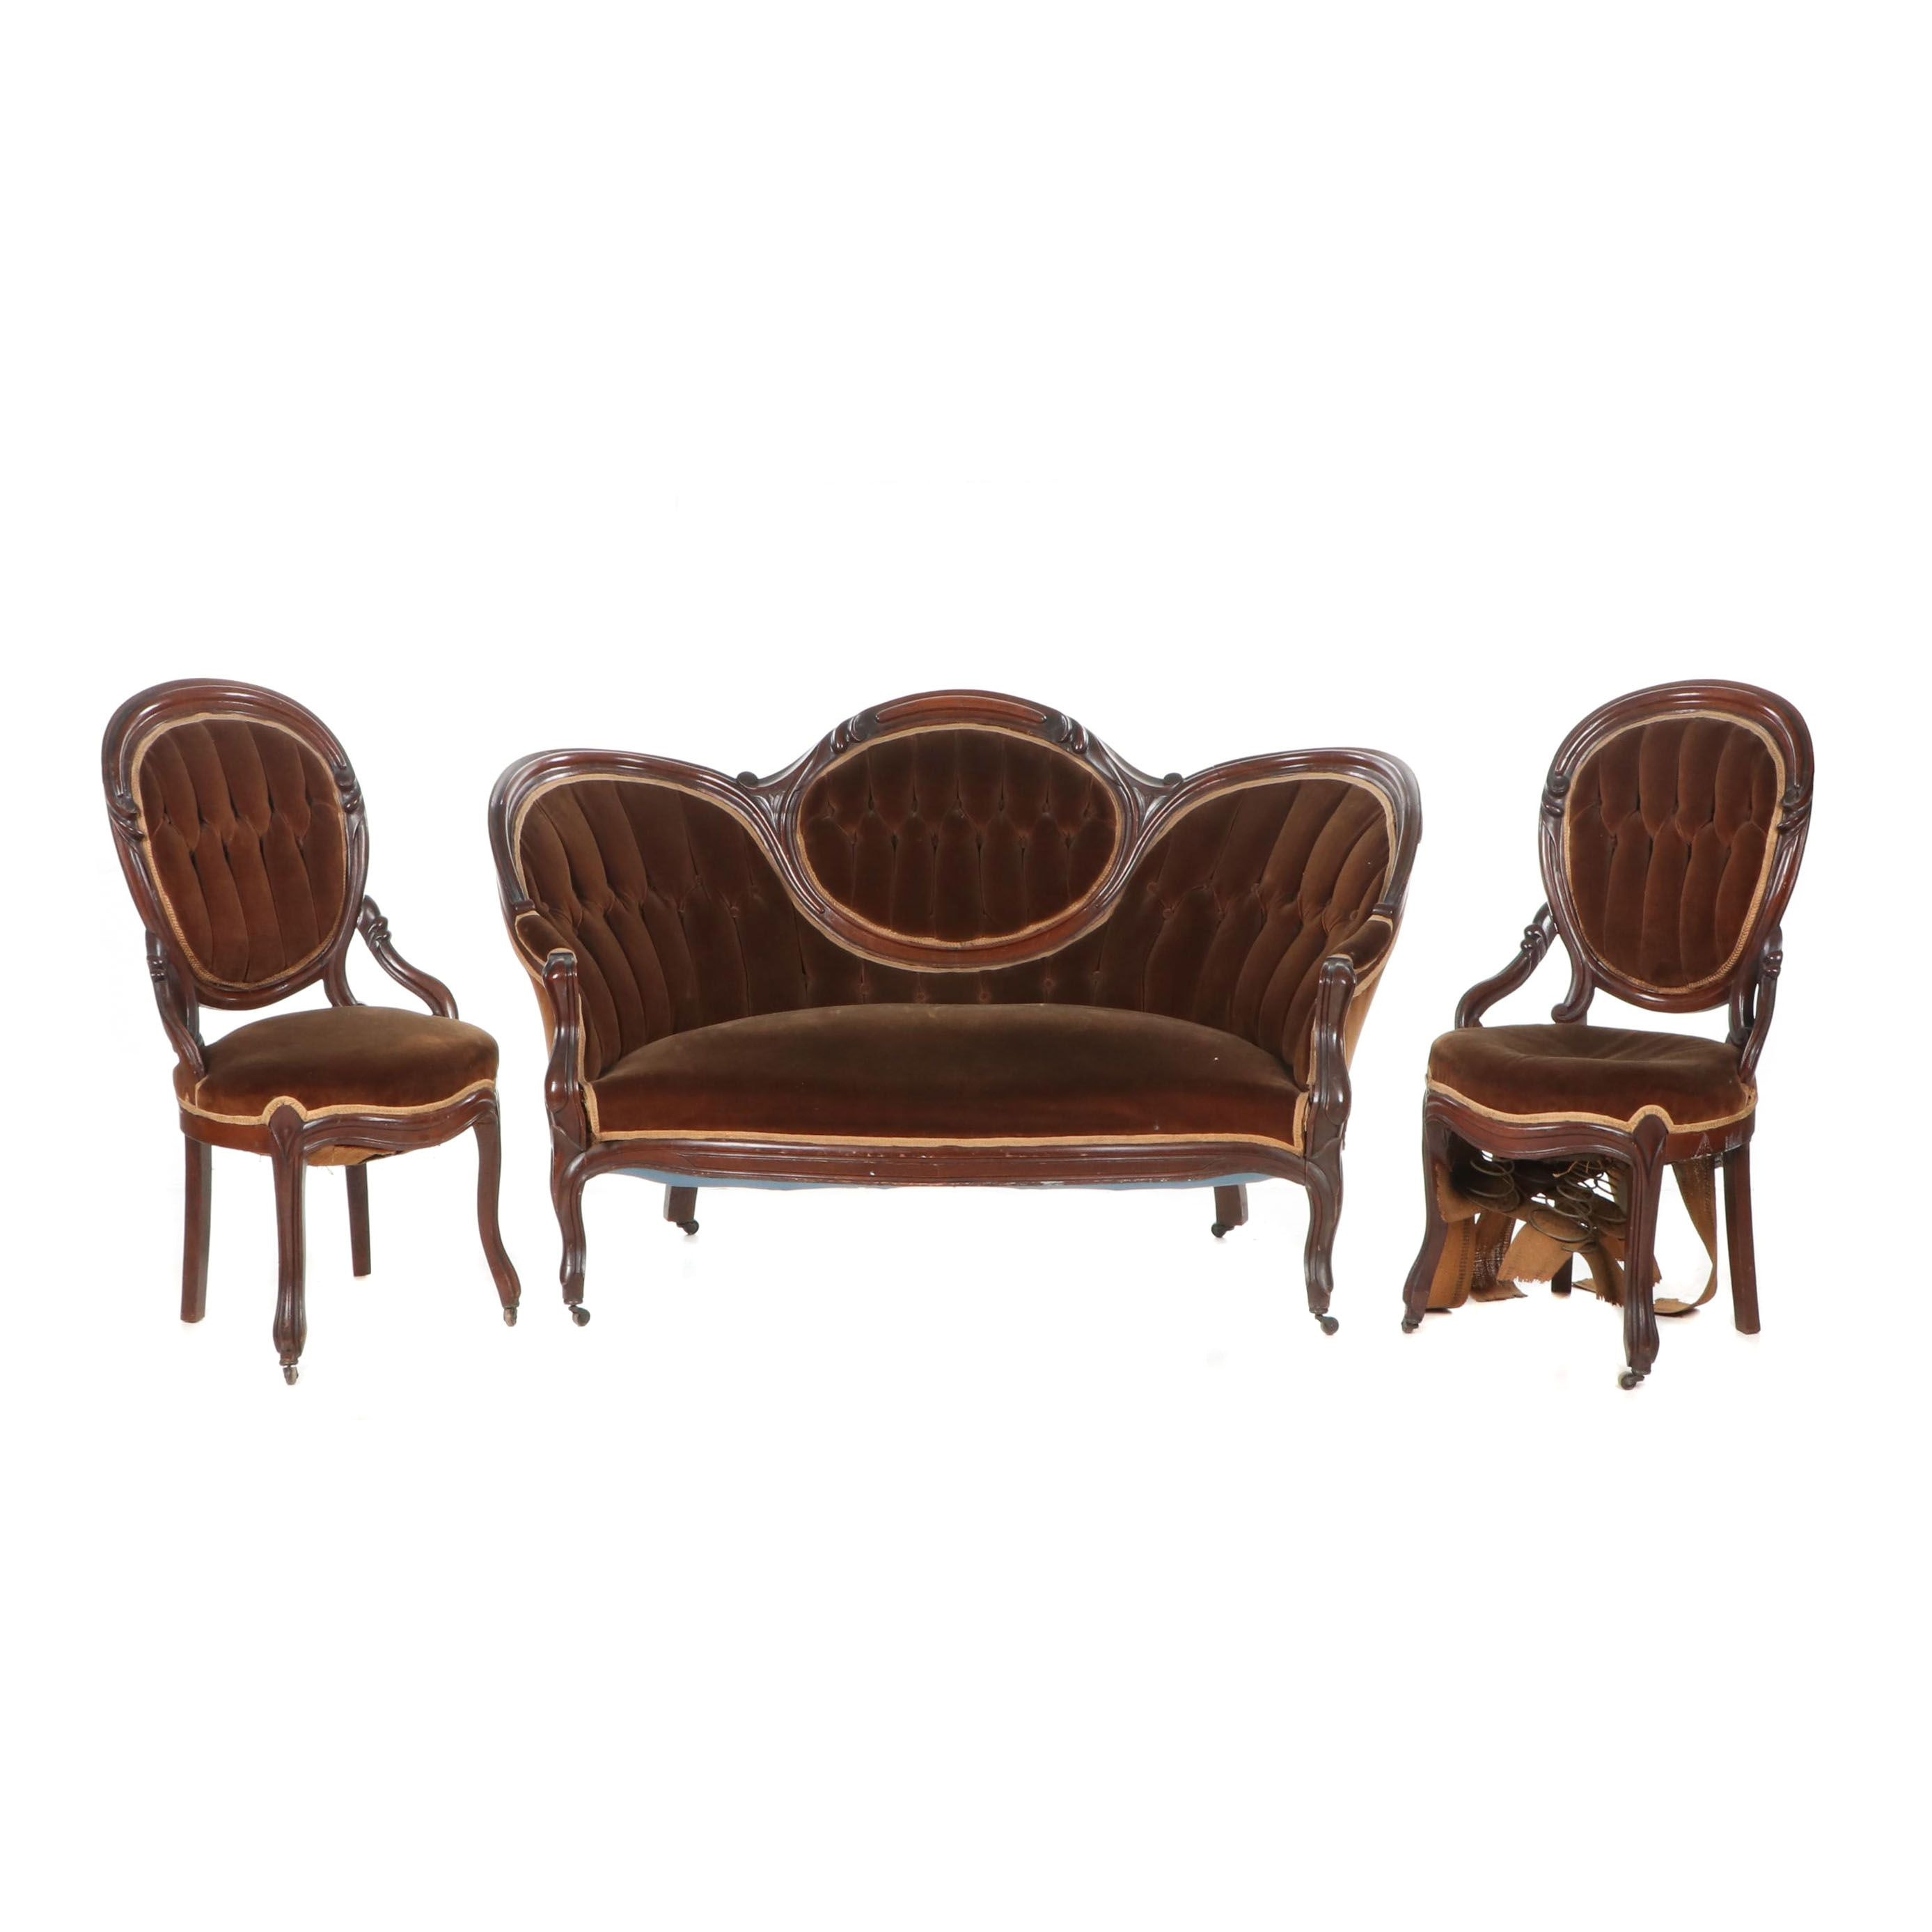 Victorian Upholstered Walnut Parlor Set, Late 19th/ Early 20th Century